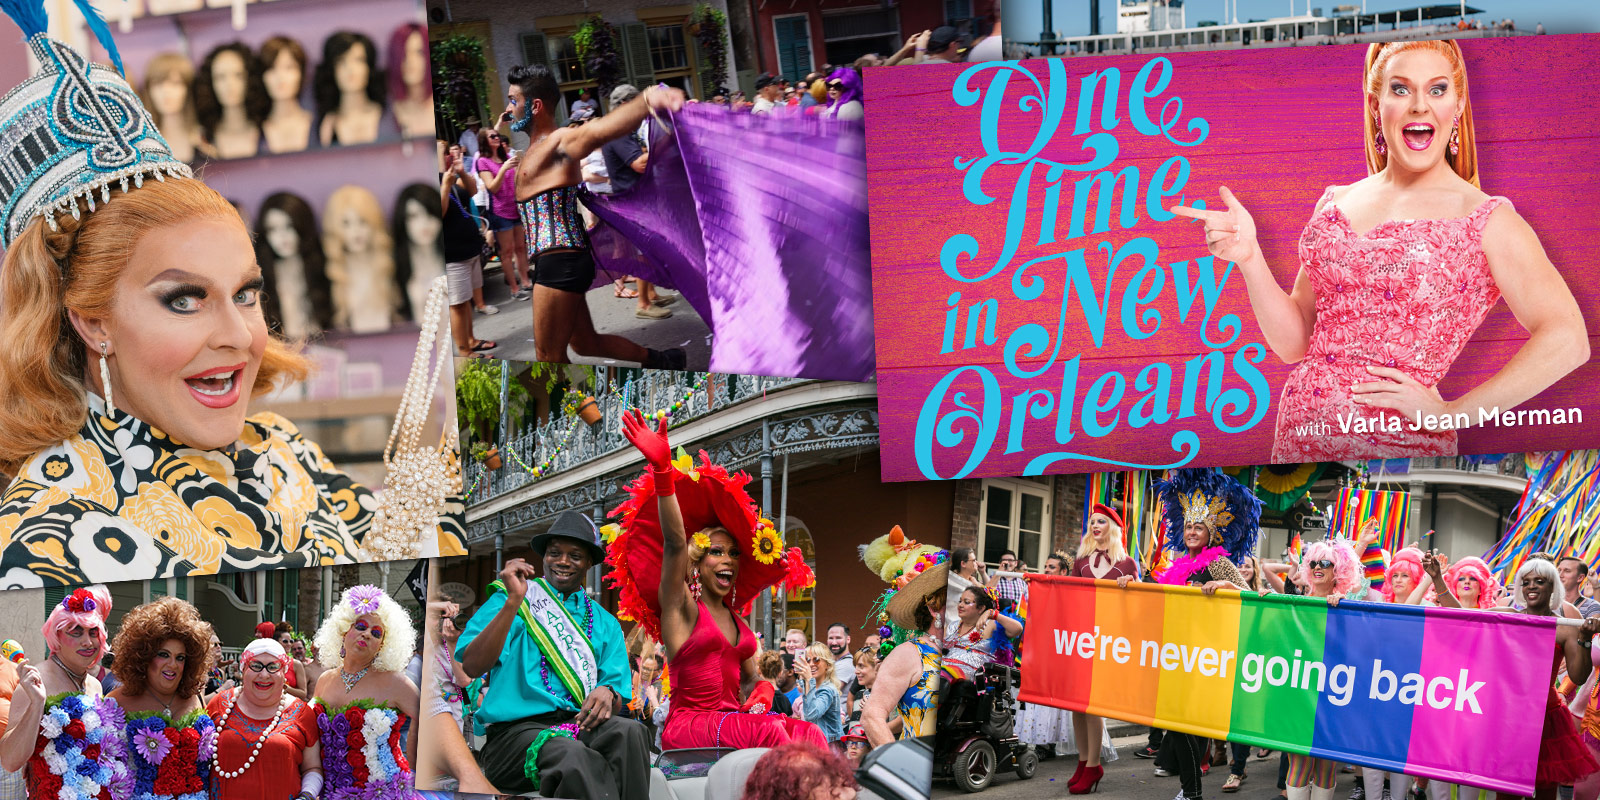 Highlights from Communify's video marketing content showcasing Varla Jean Merman, a Gay Mardi Gras krewe, and LGBT influencers